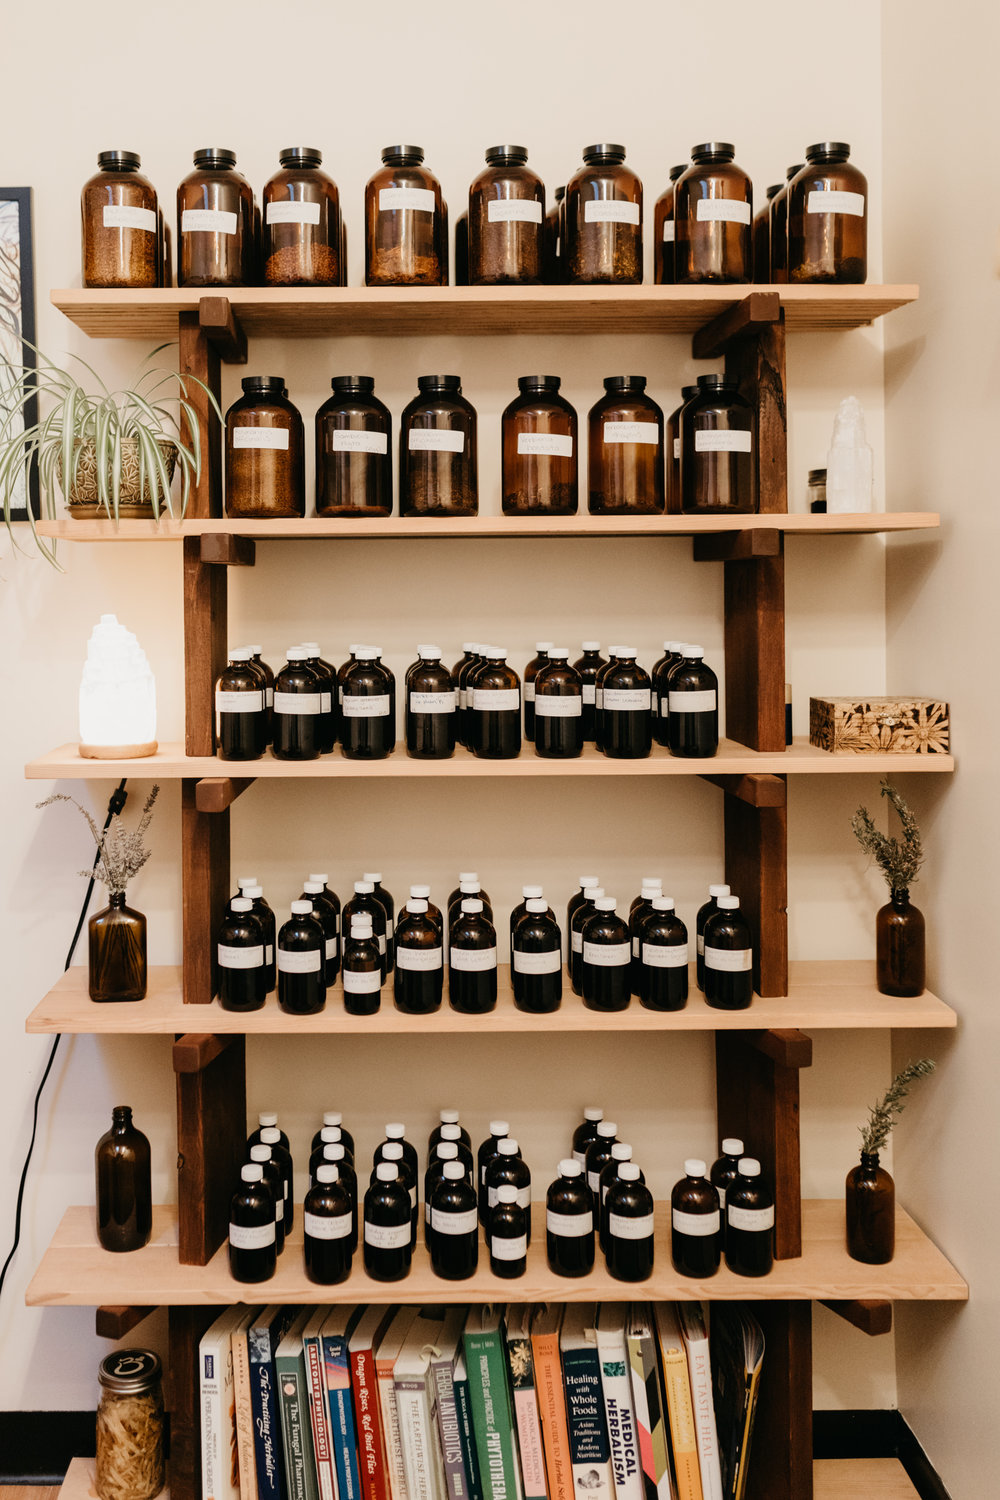 Shelf full of herbal medicine